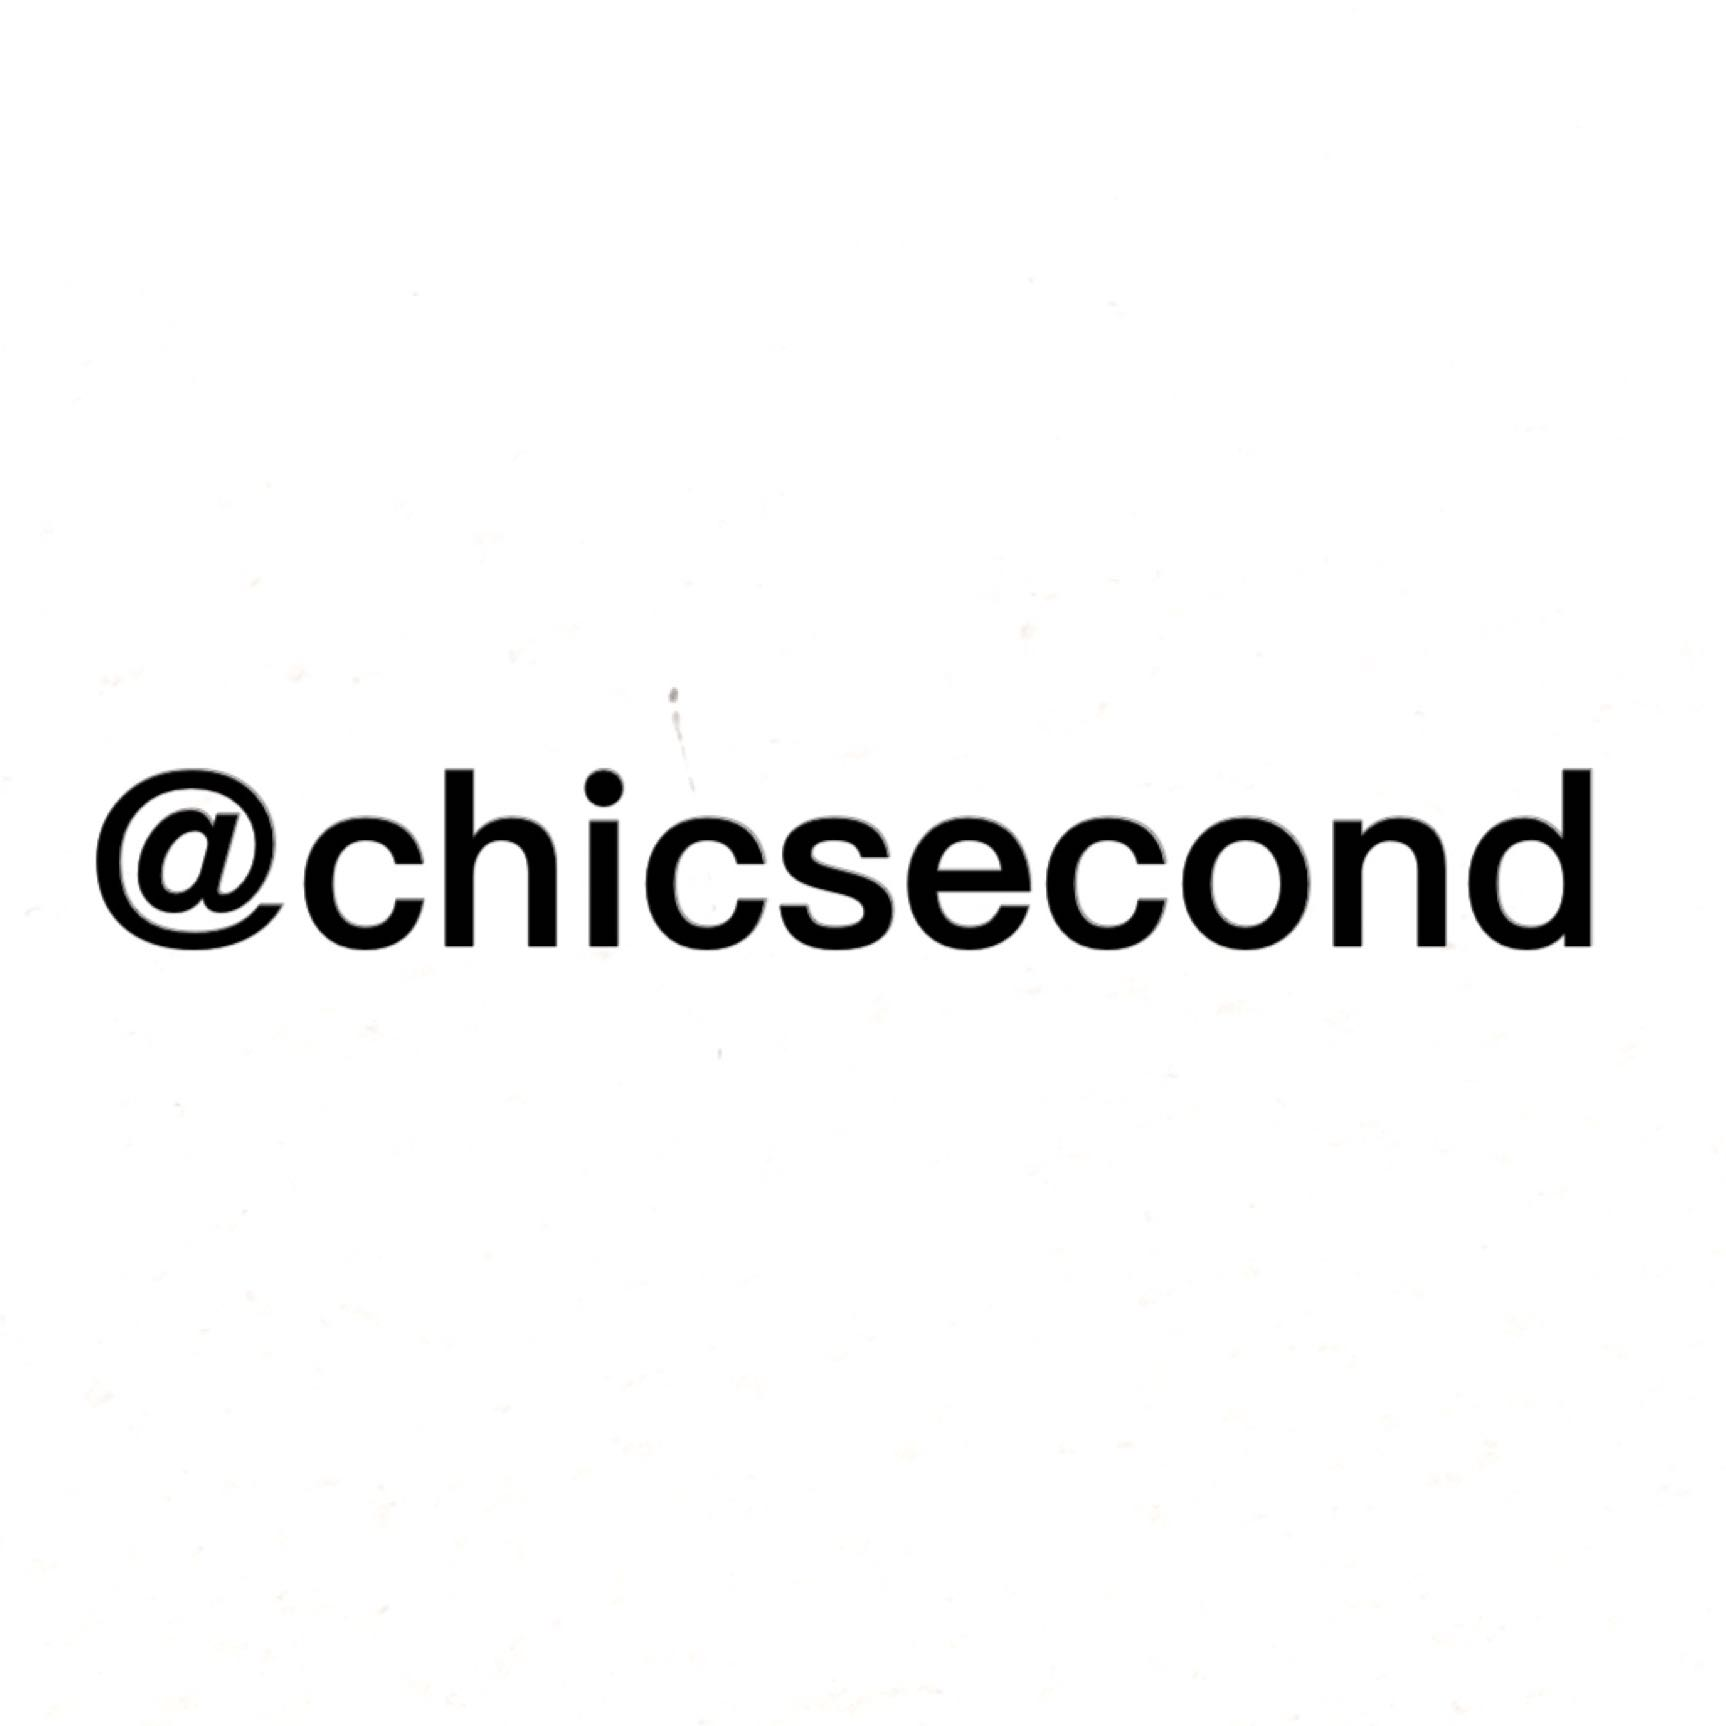 chicsecond